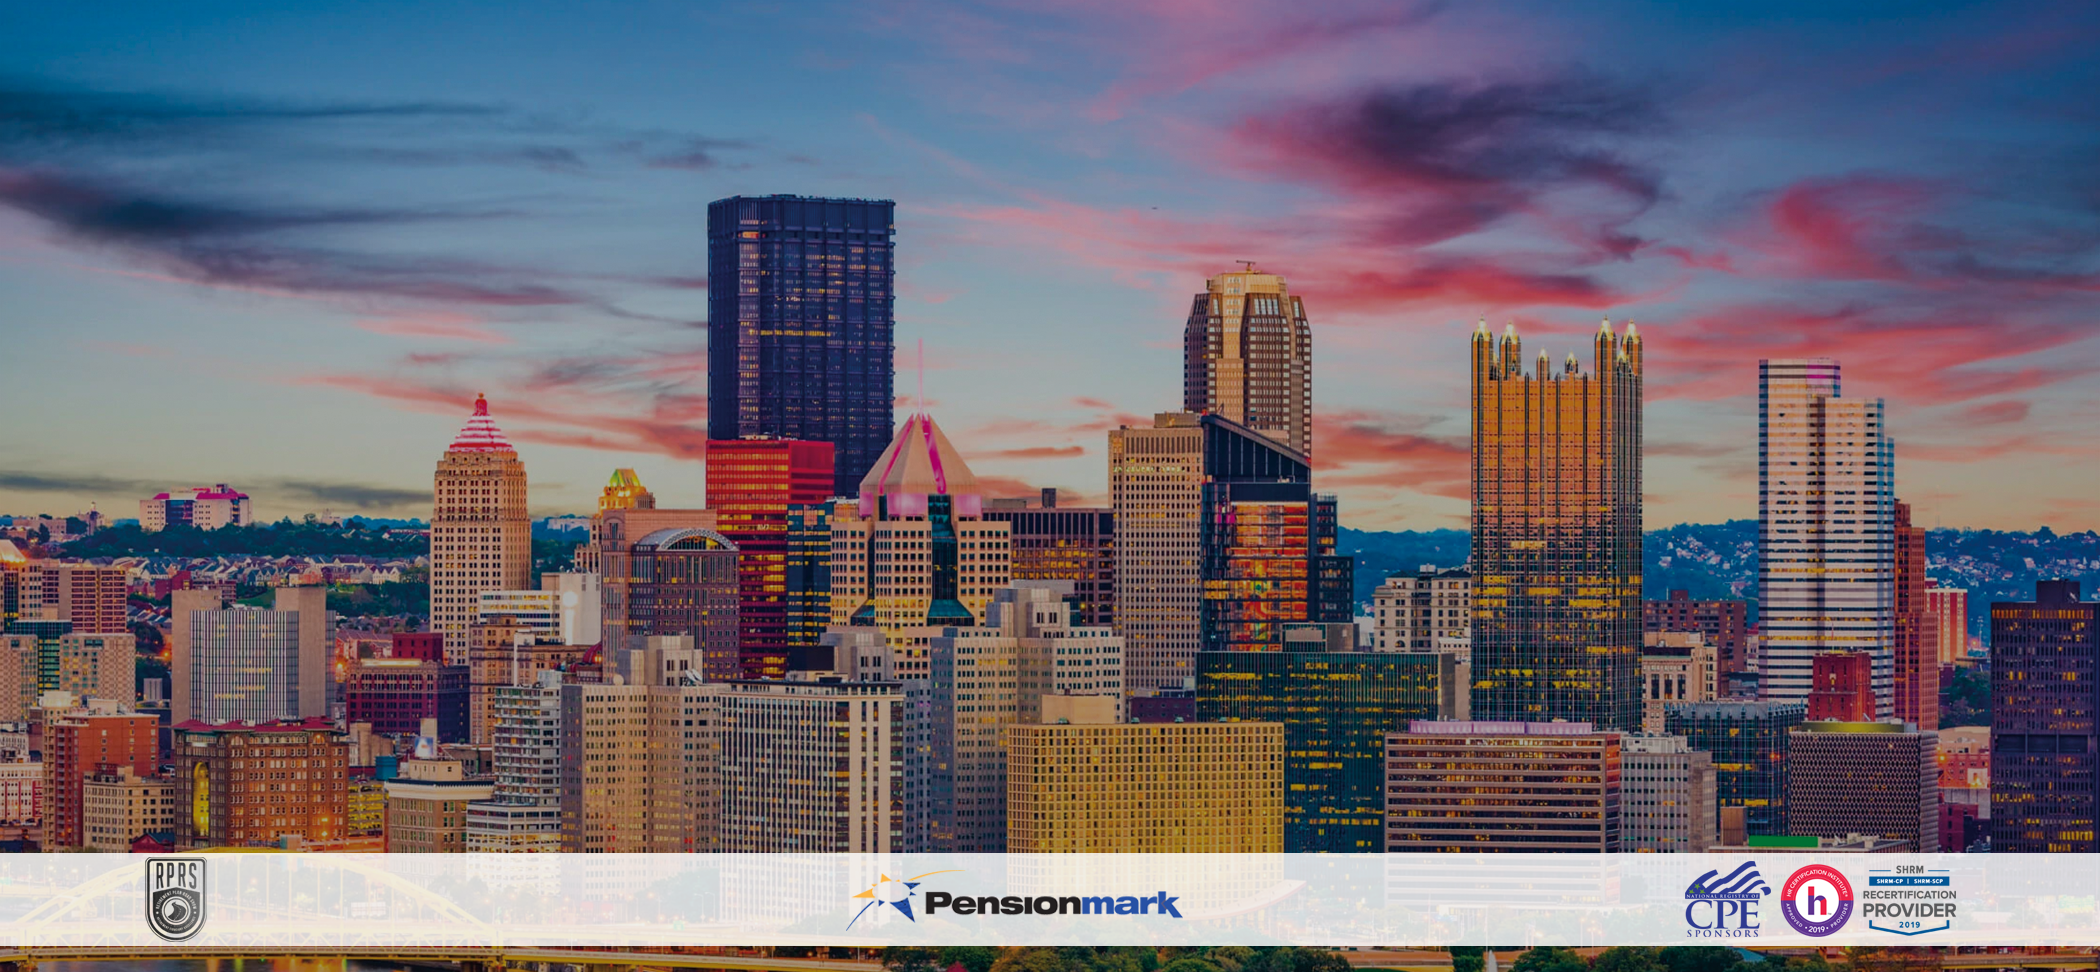 2019 PITTSBURGH FIDUCIARY SUMMIT - PART OF THE RETIREMENT PLAN ROAD SHOW